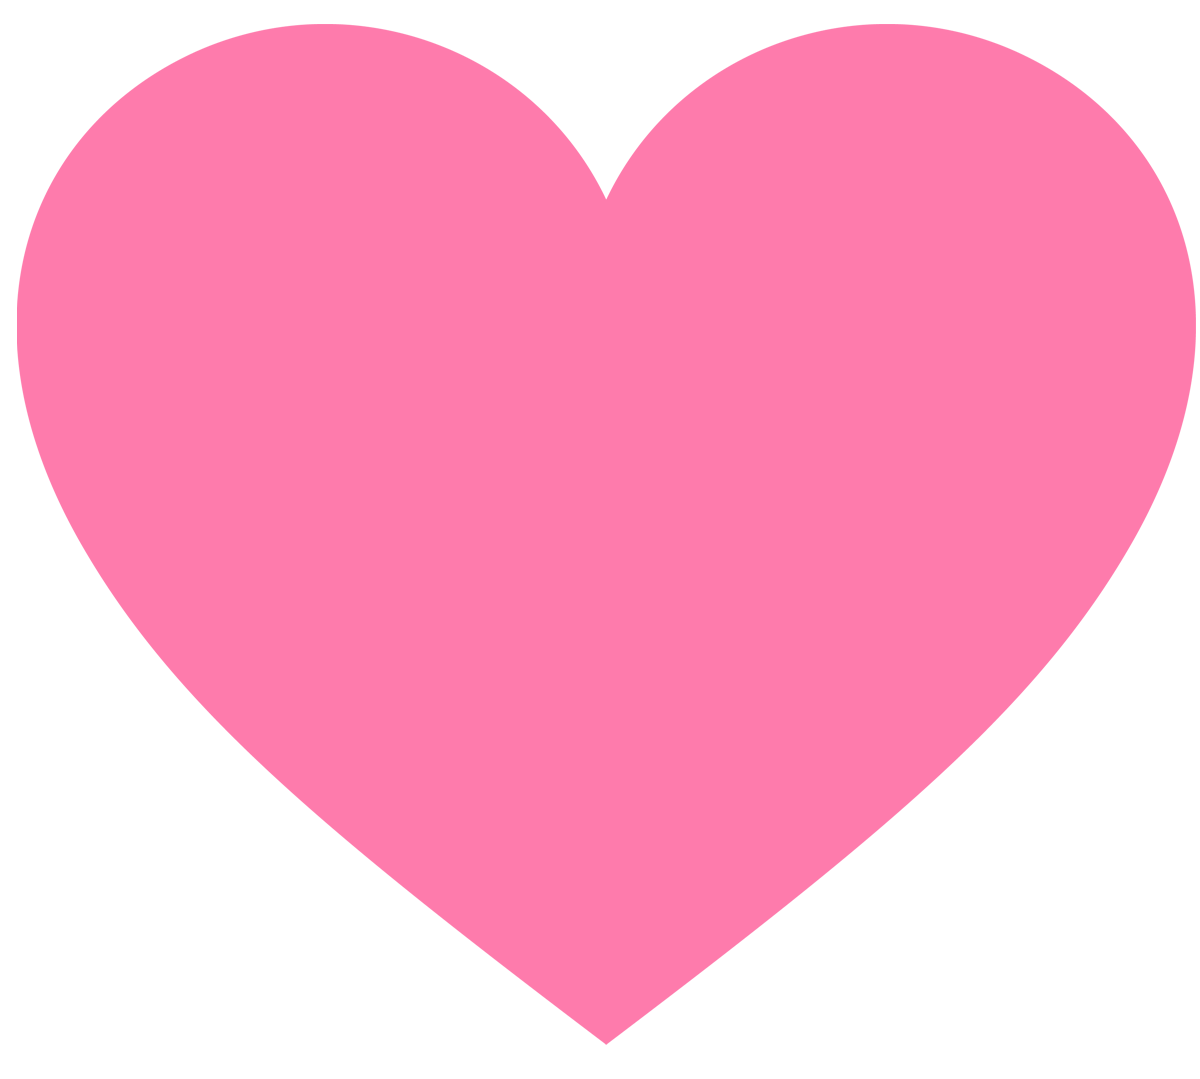 Hot pink heart clipart picture black and white library Hot Pink Heart Clipart | Letters Format picture black and white library